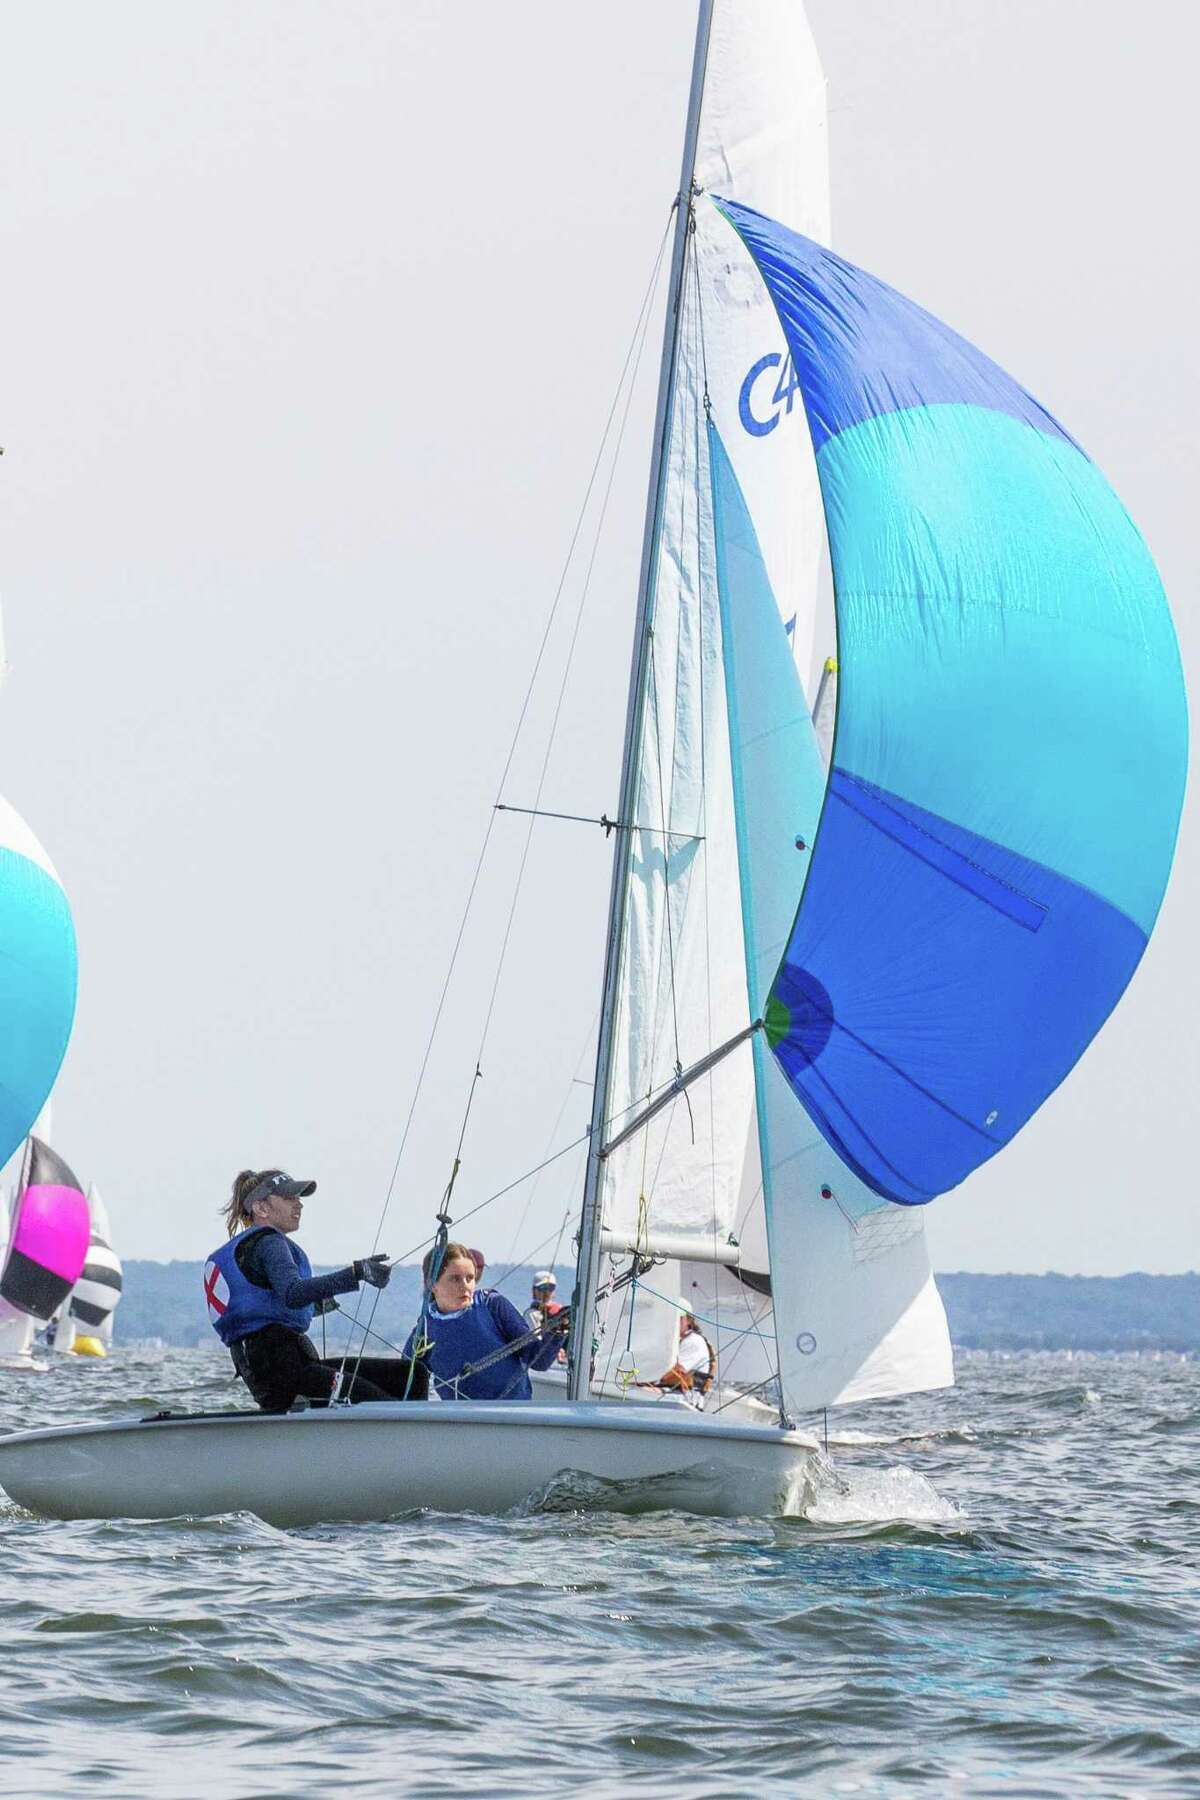 Indian Harbor Yacht Club in Greenwich hosted the Junior Sailing Association of Long Island Sound hosted the Laser, Laser Radial and C420 Championships this week. Maddie Saffer of American Yacht Club in Rye, N.Y., was the Laser Radial champion at the regatta.